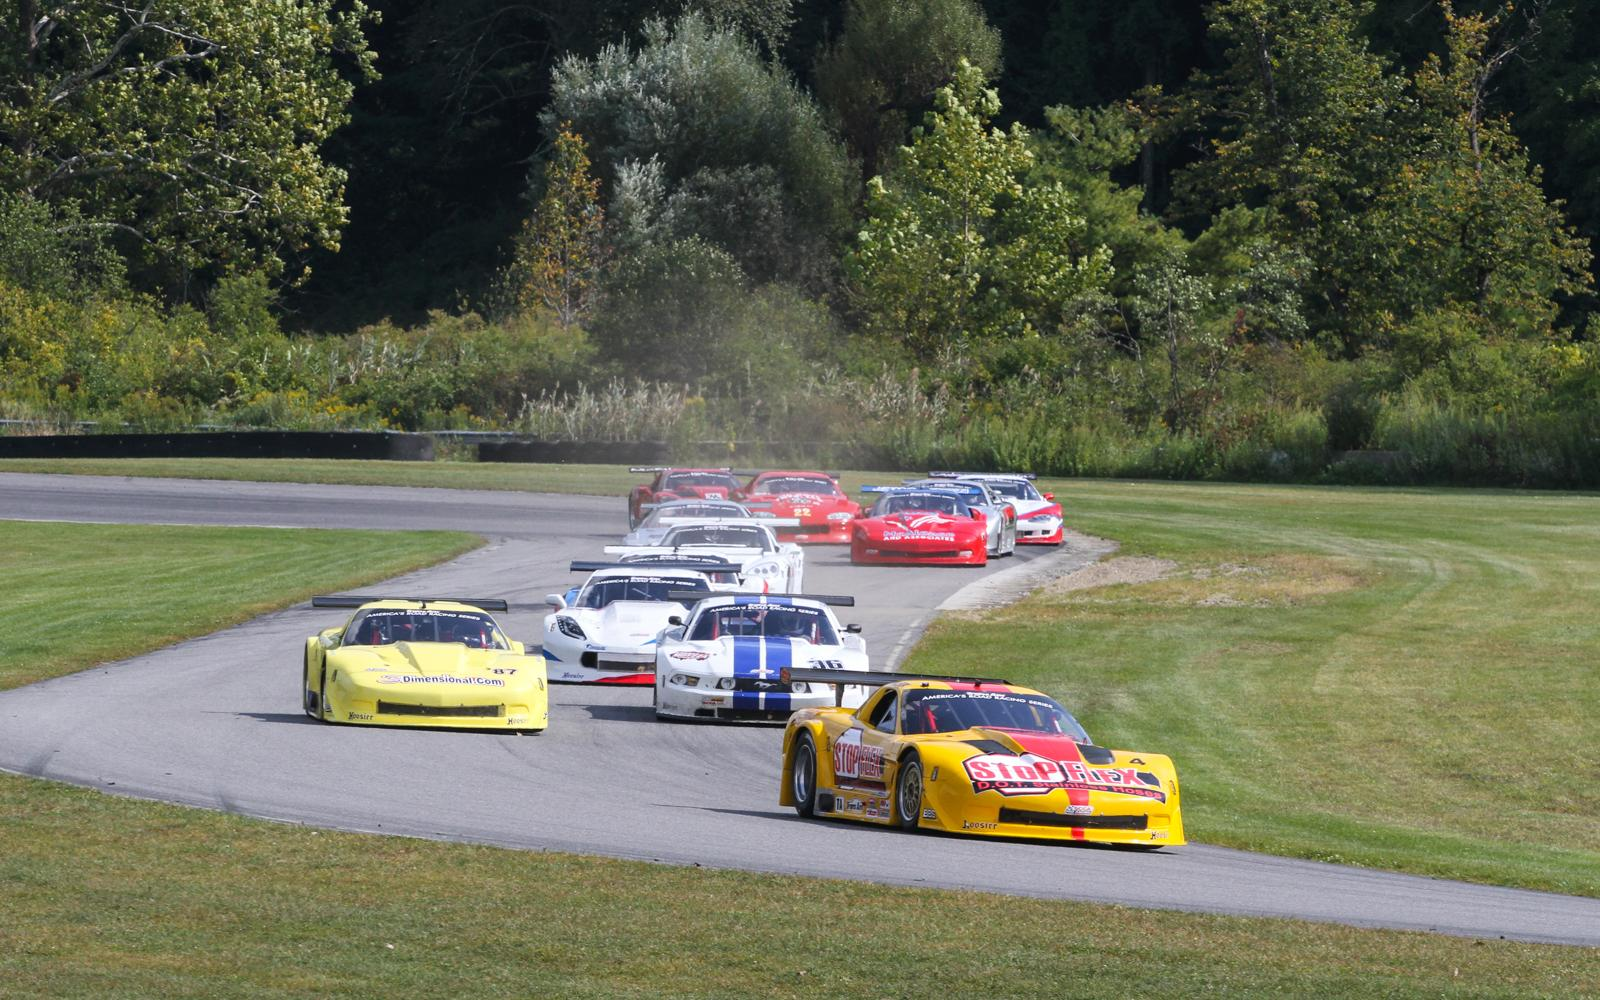 Paul Fix runs the table at Lime Rock Park, Cameron Lawrence gives Dodge first TA2 win